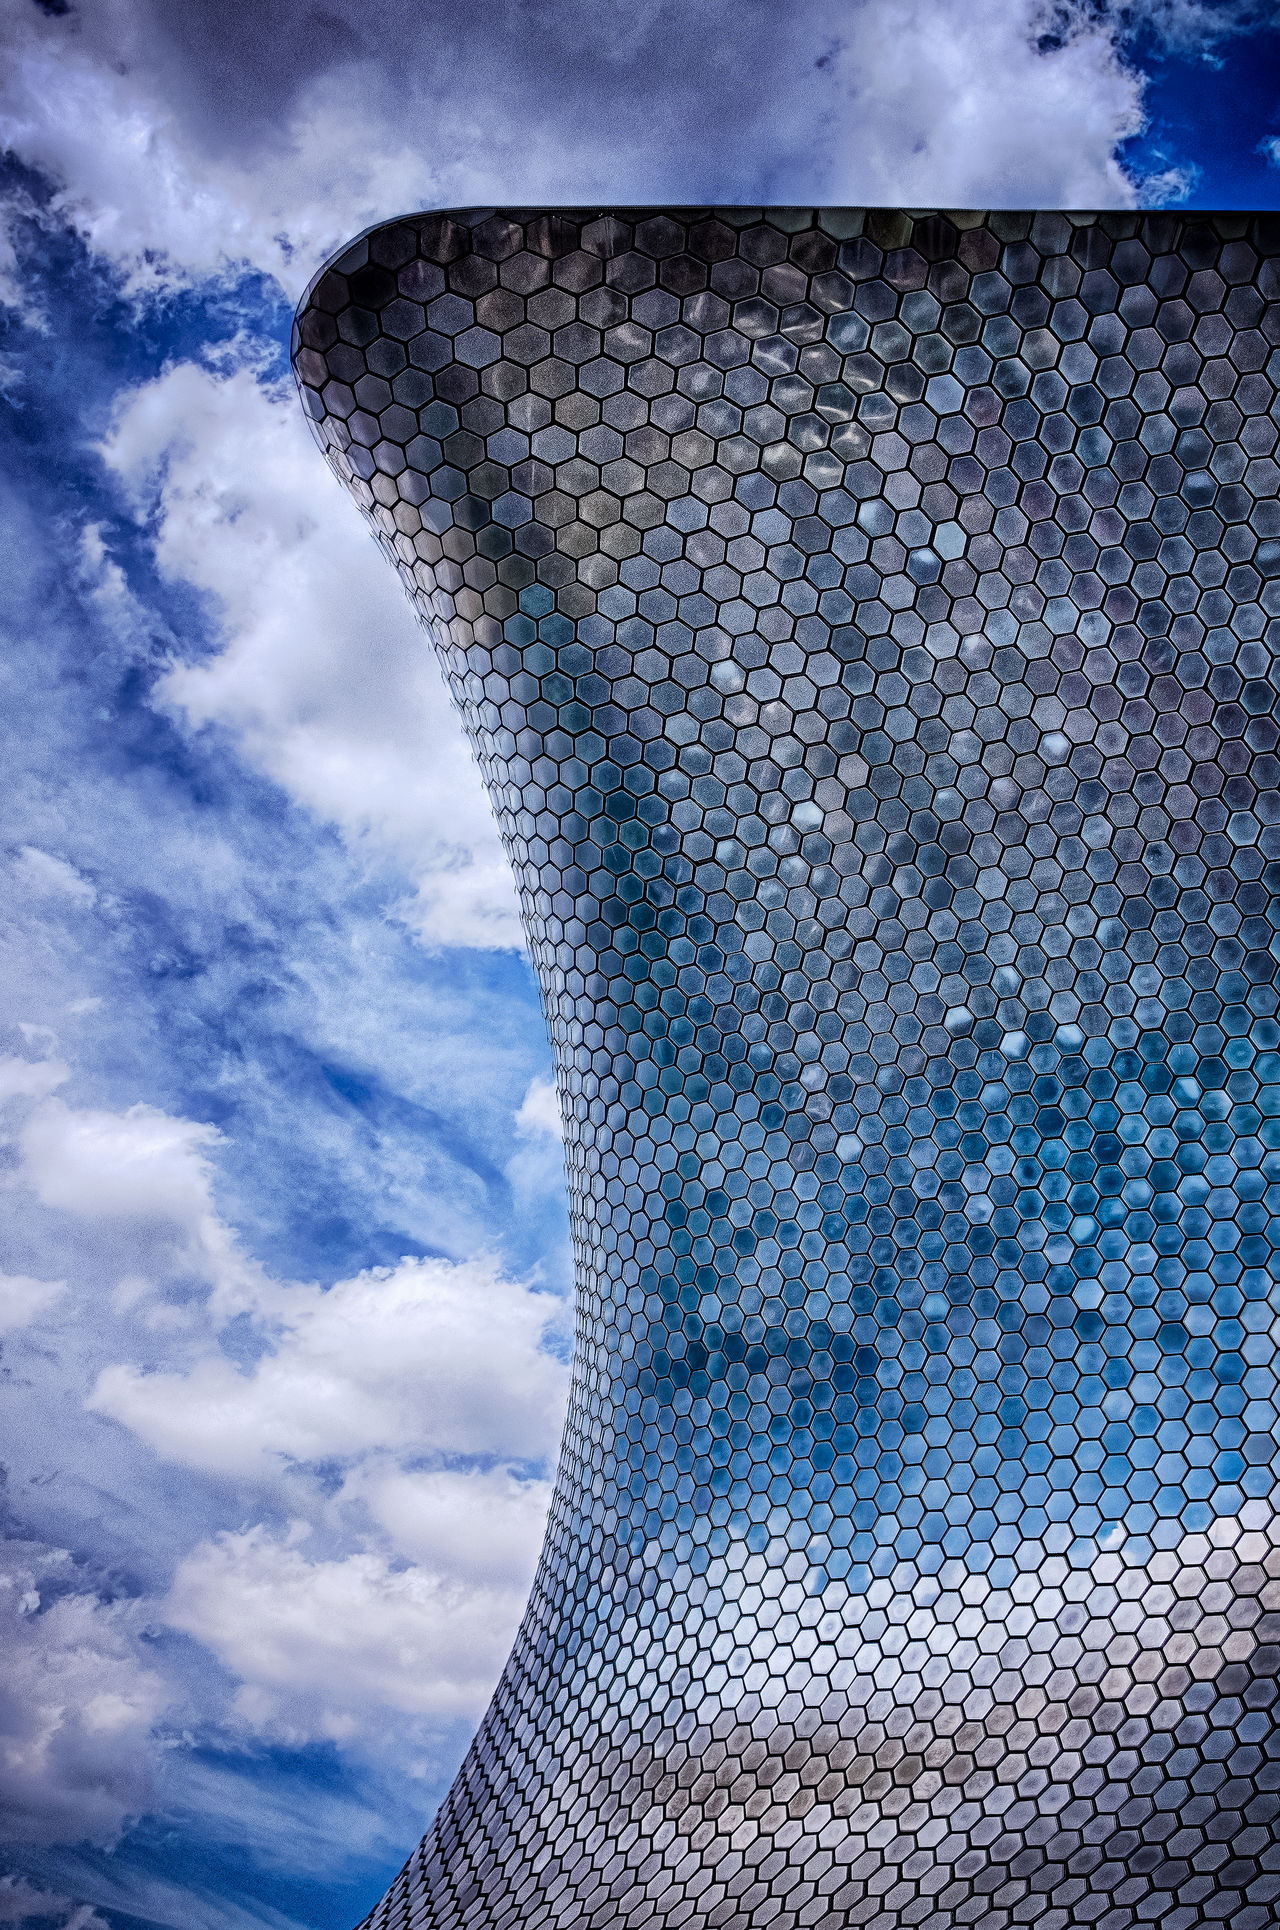 Glass and Metal Wave. Museo Soumaya, Ciudad De México, Mexico. Fujifilm X100t | 23mm | f/4 | iso 200 Wanderlust Architecture Urban Exploration